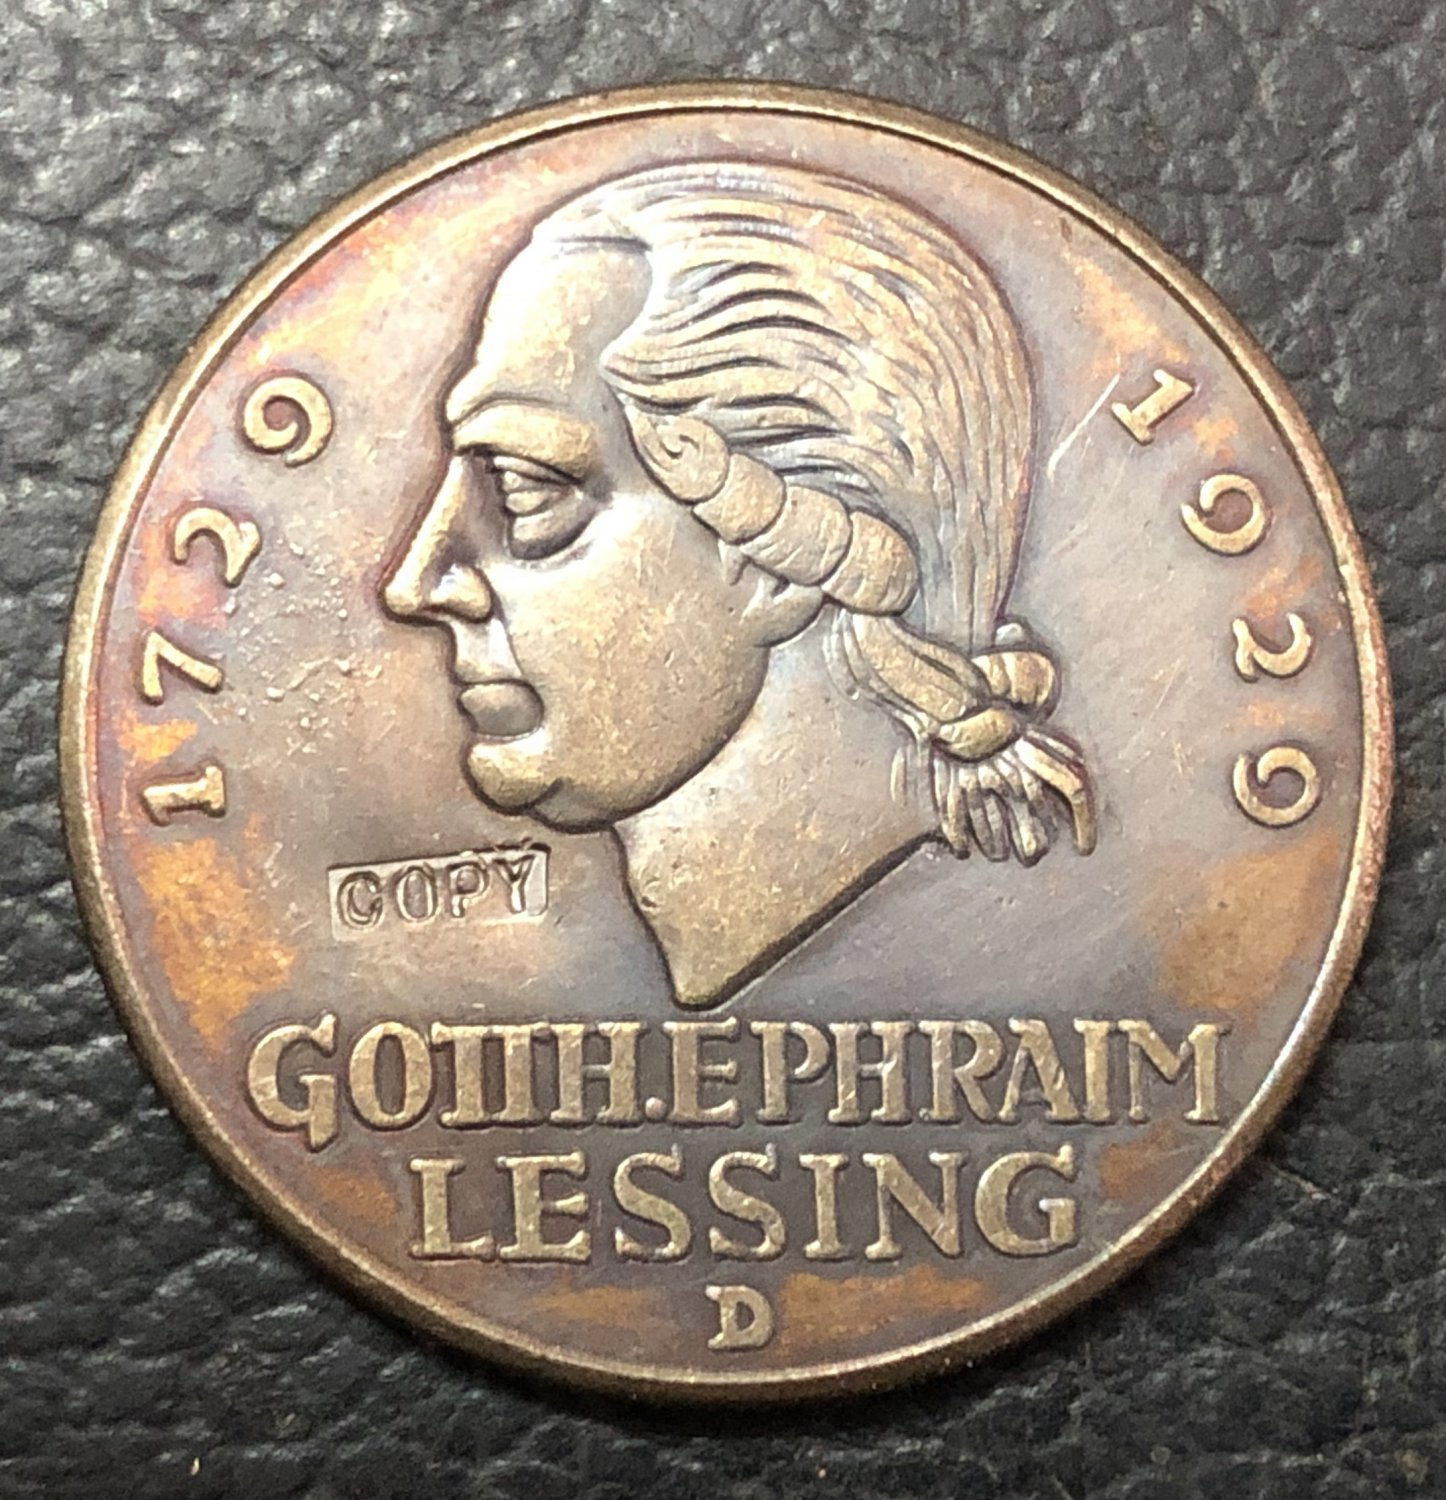 1929 Germany 3 Reichsmark Lessing Copy Coin